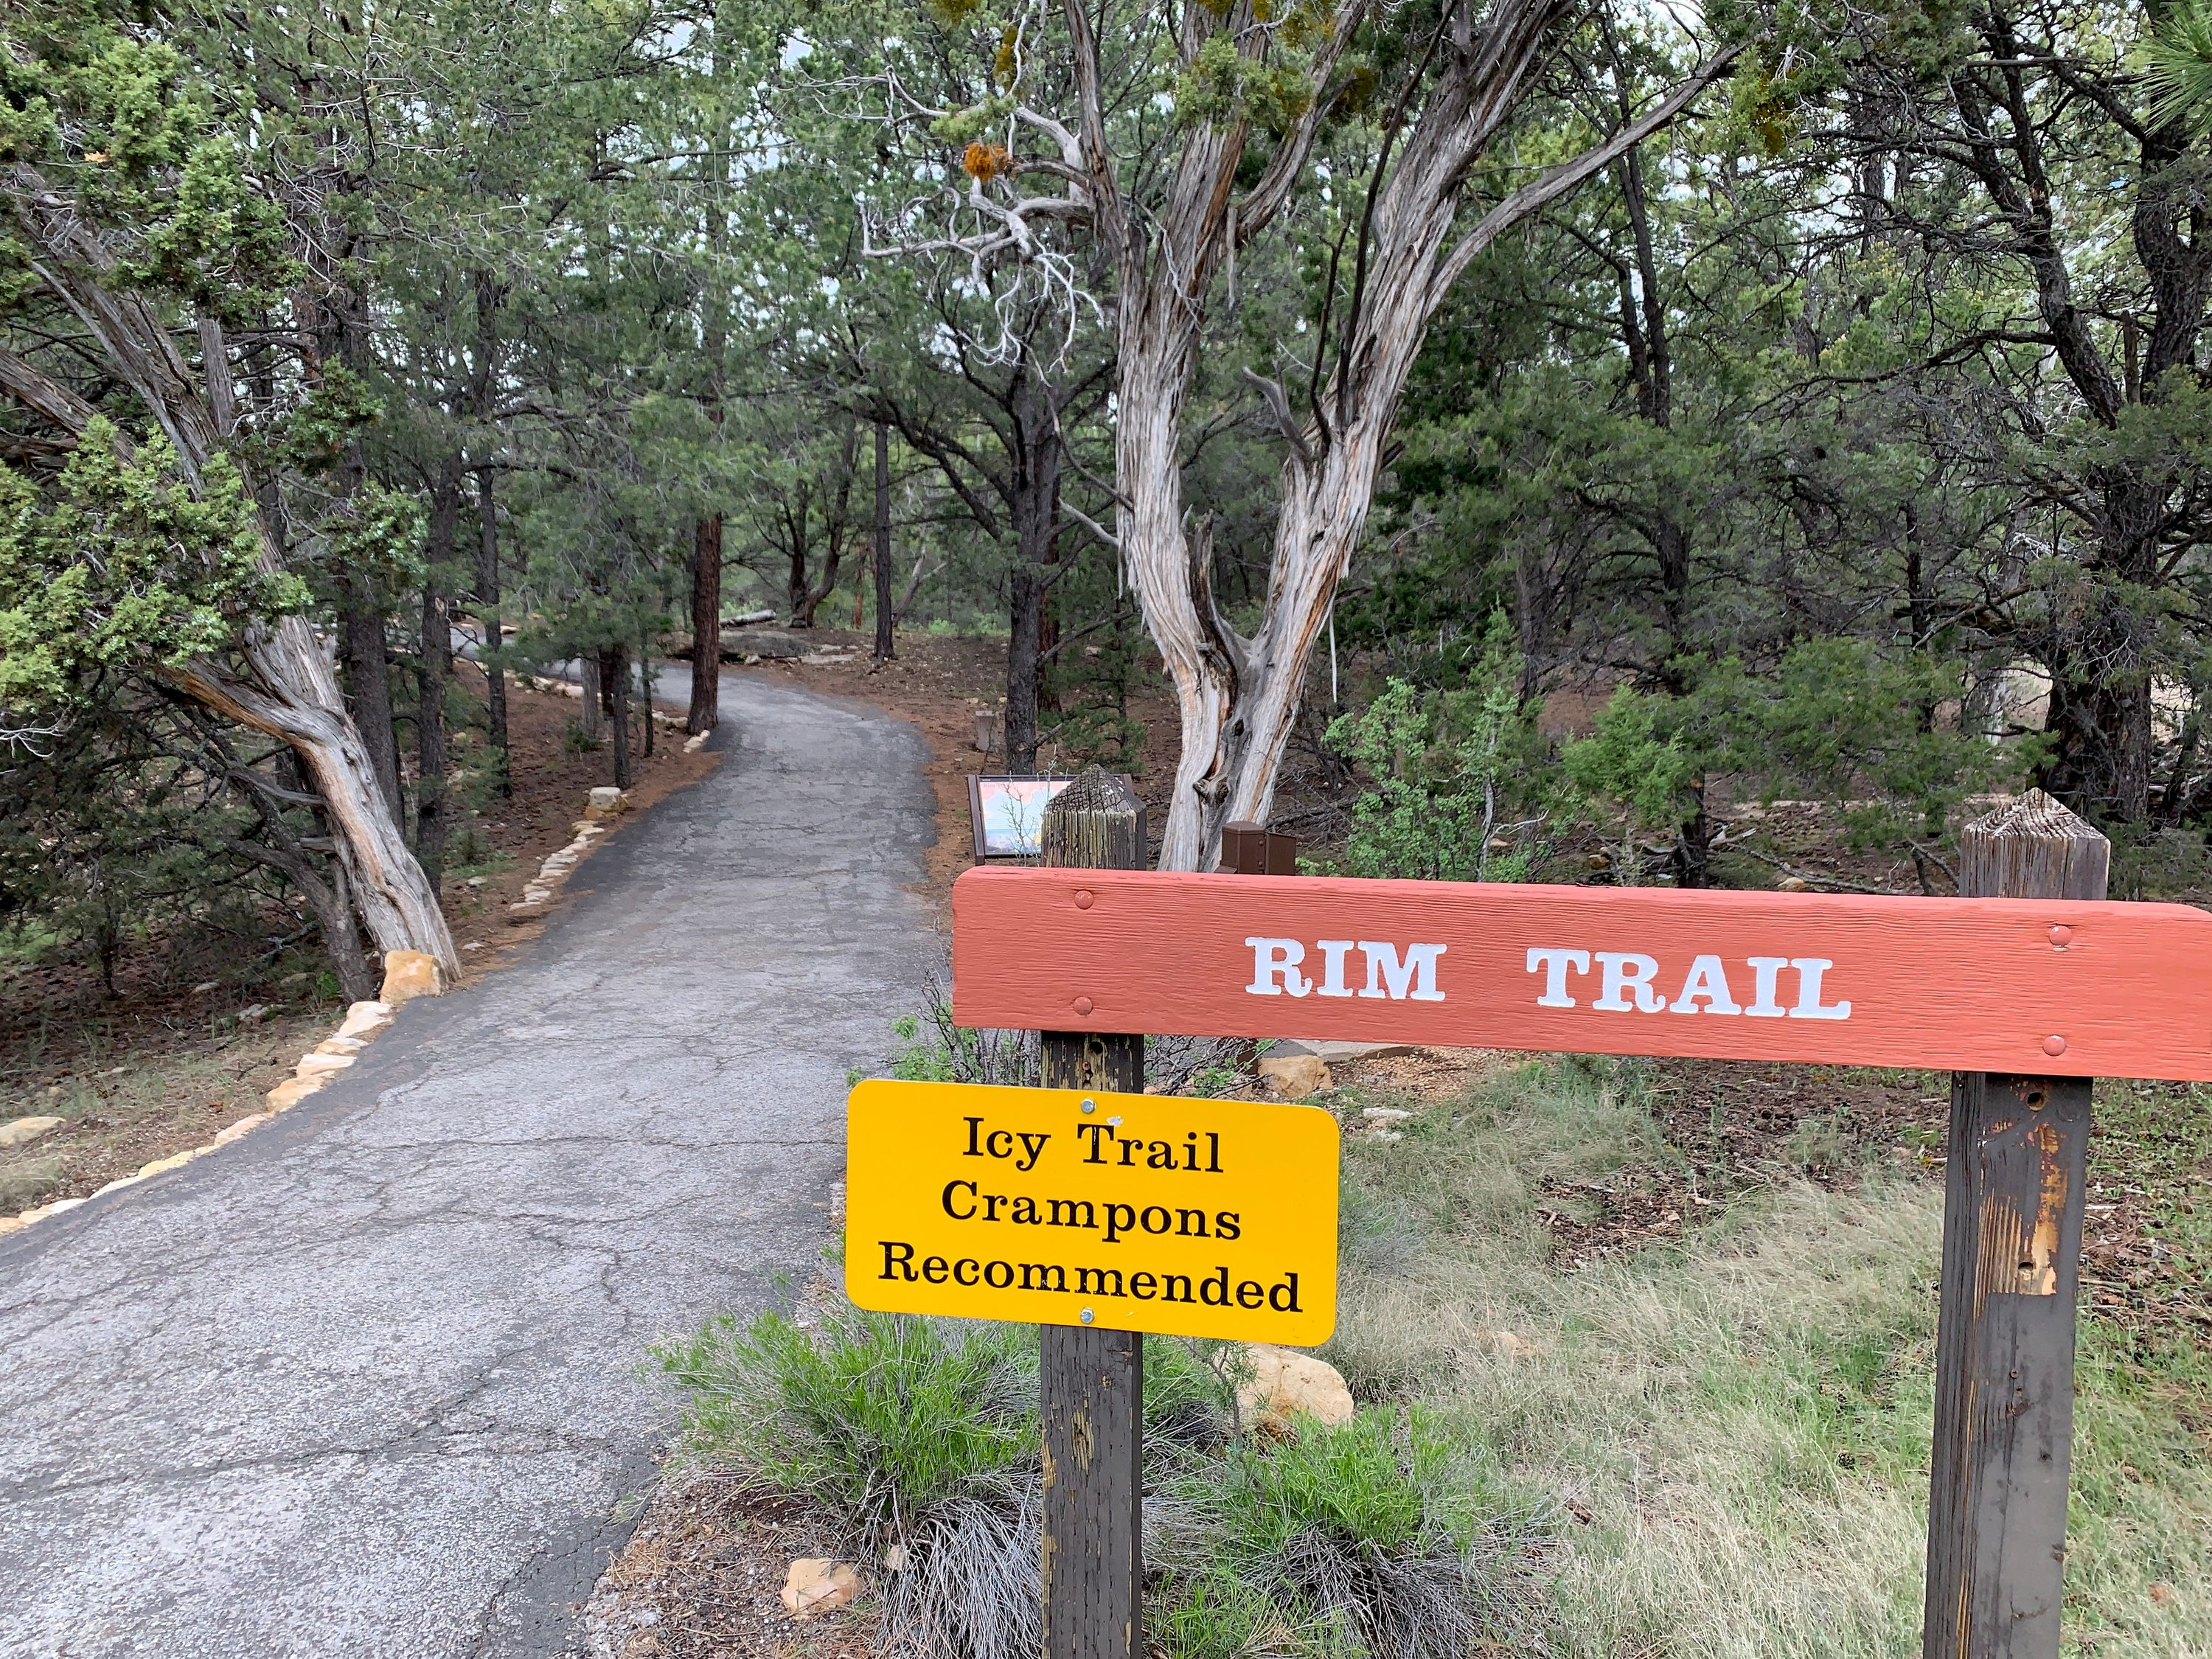 An entrance to the Rim Trail near a Visitor's Center at the Grand Canyon